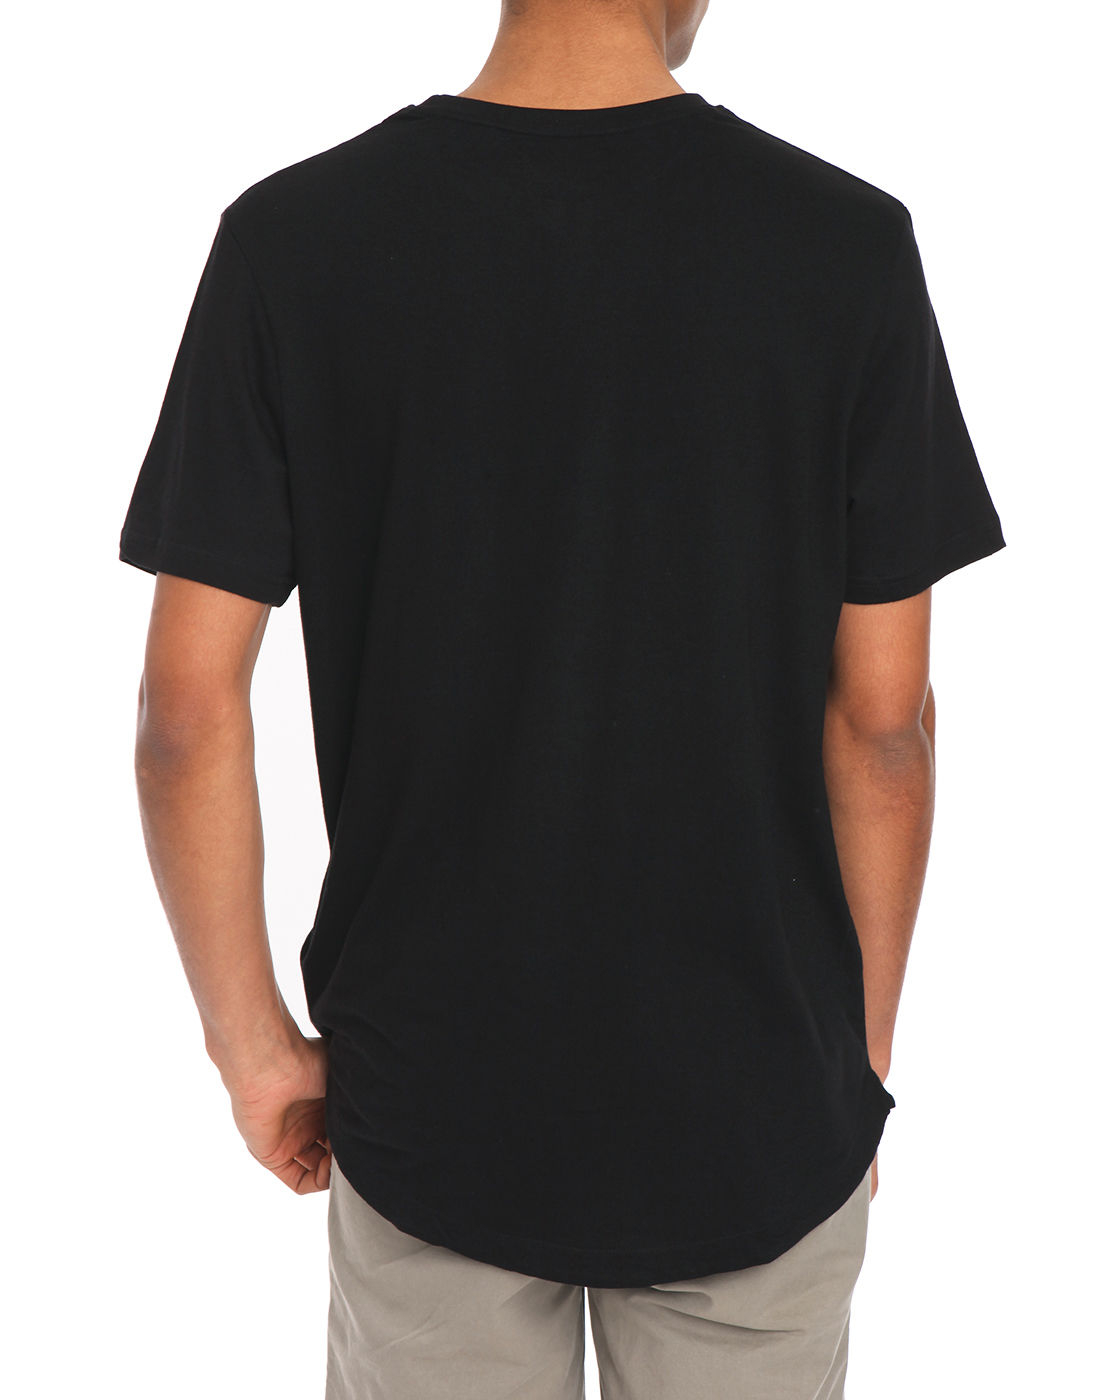 eleven paris bery baseball black t shirt in black for men lyst. Black Bedroom Furniture Sets. Home Design Ideas